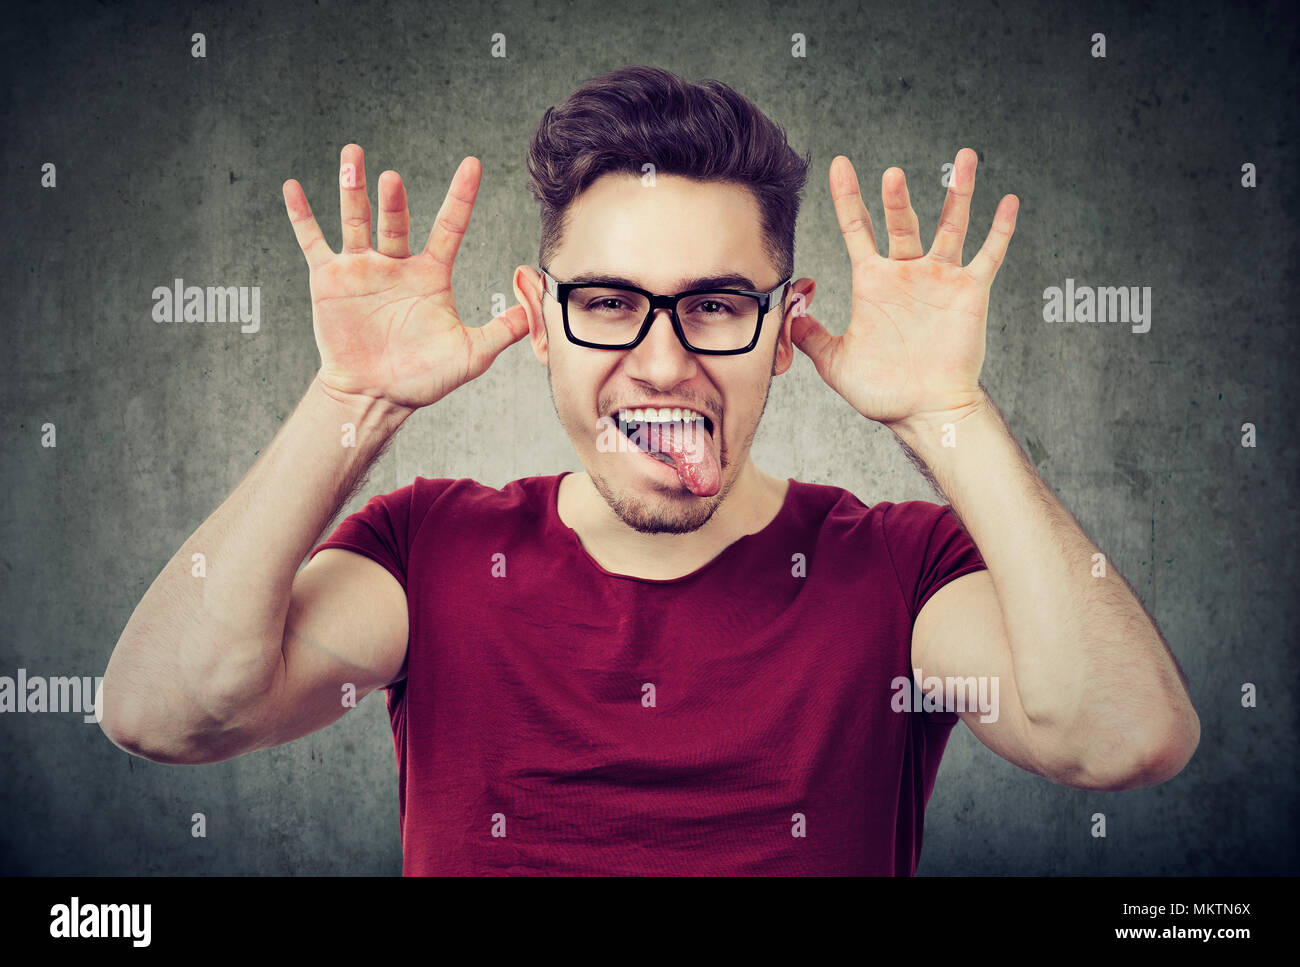 Portrait of young playful man grimacing and showing tongue on gray background. - Stock Image